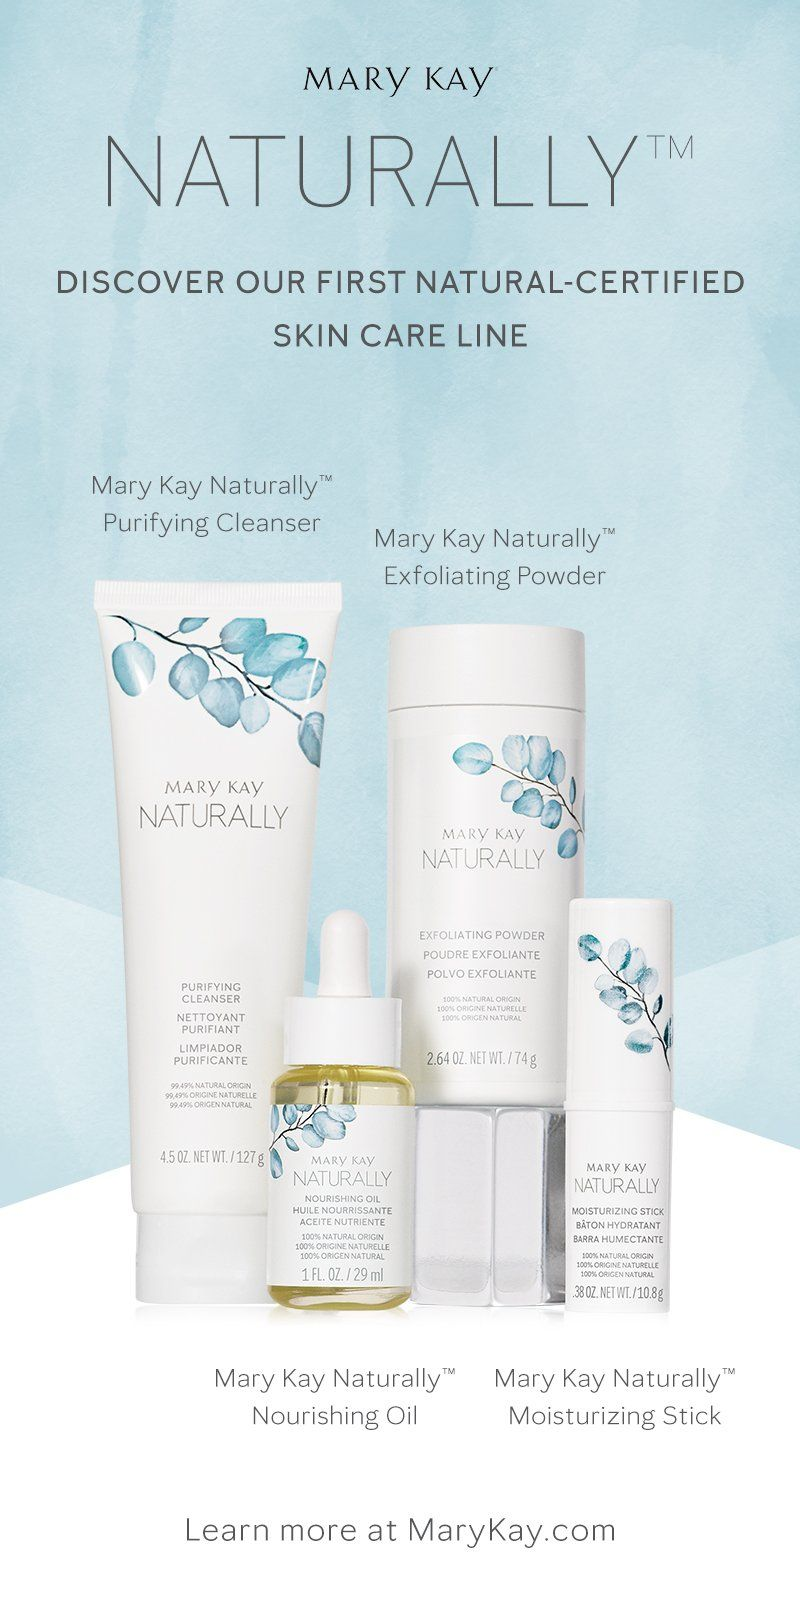 A Simple Solution For Gorgeous Healthy Looking Skin Mary Kay Naturally Is Our First Natural Certi Mary Kay Skin Care Mary Kay Inspiration Mary Kay Marketing